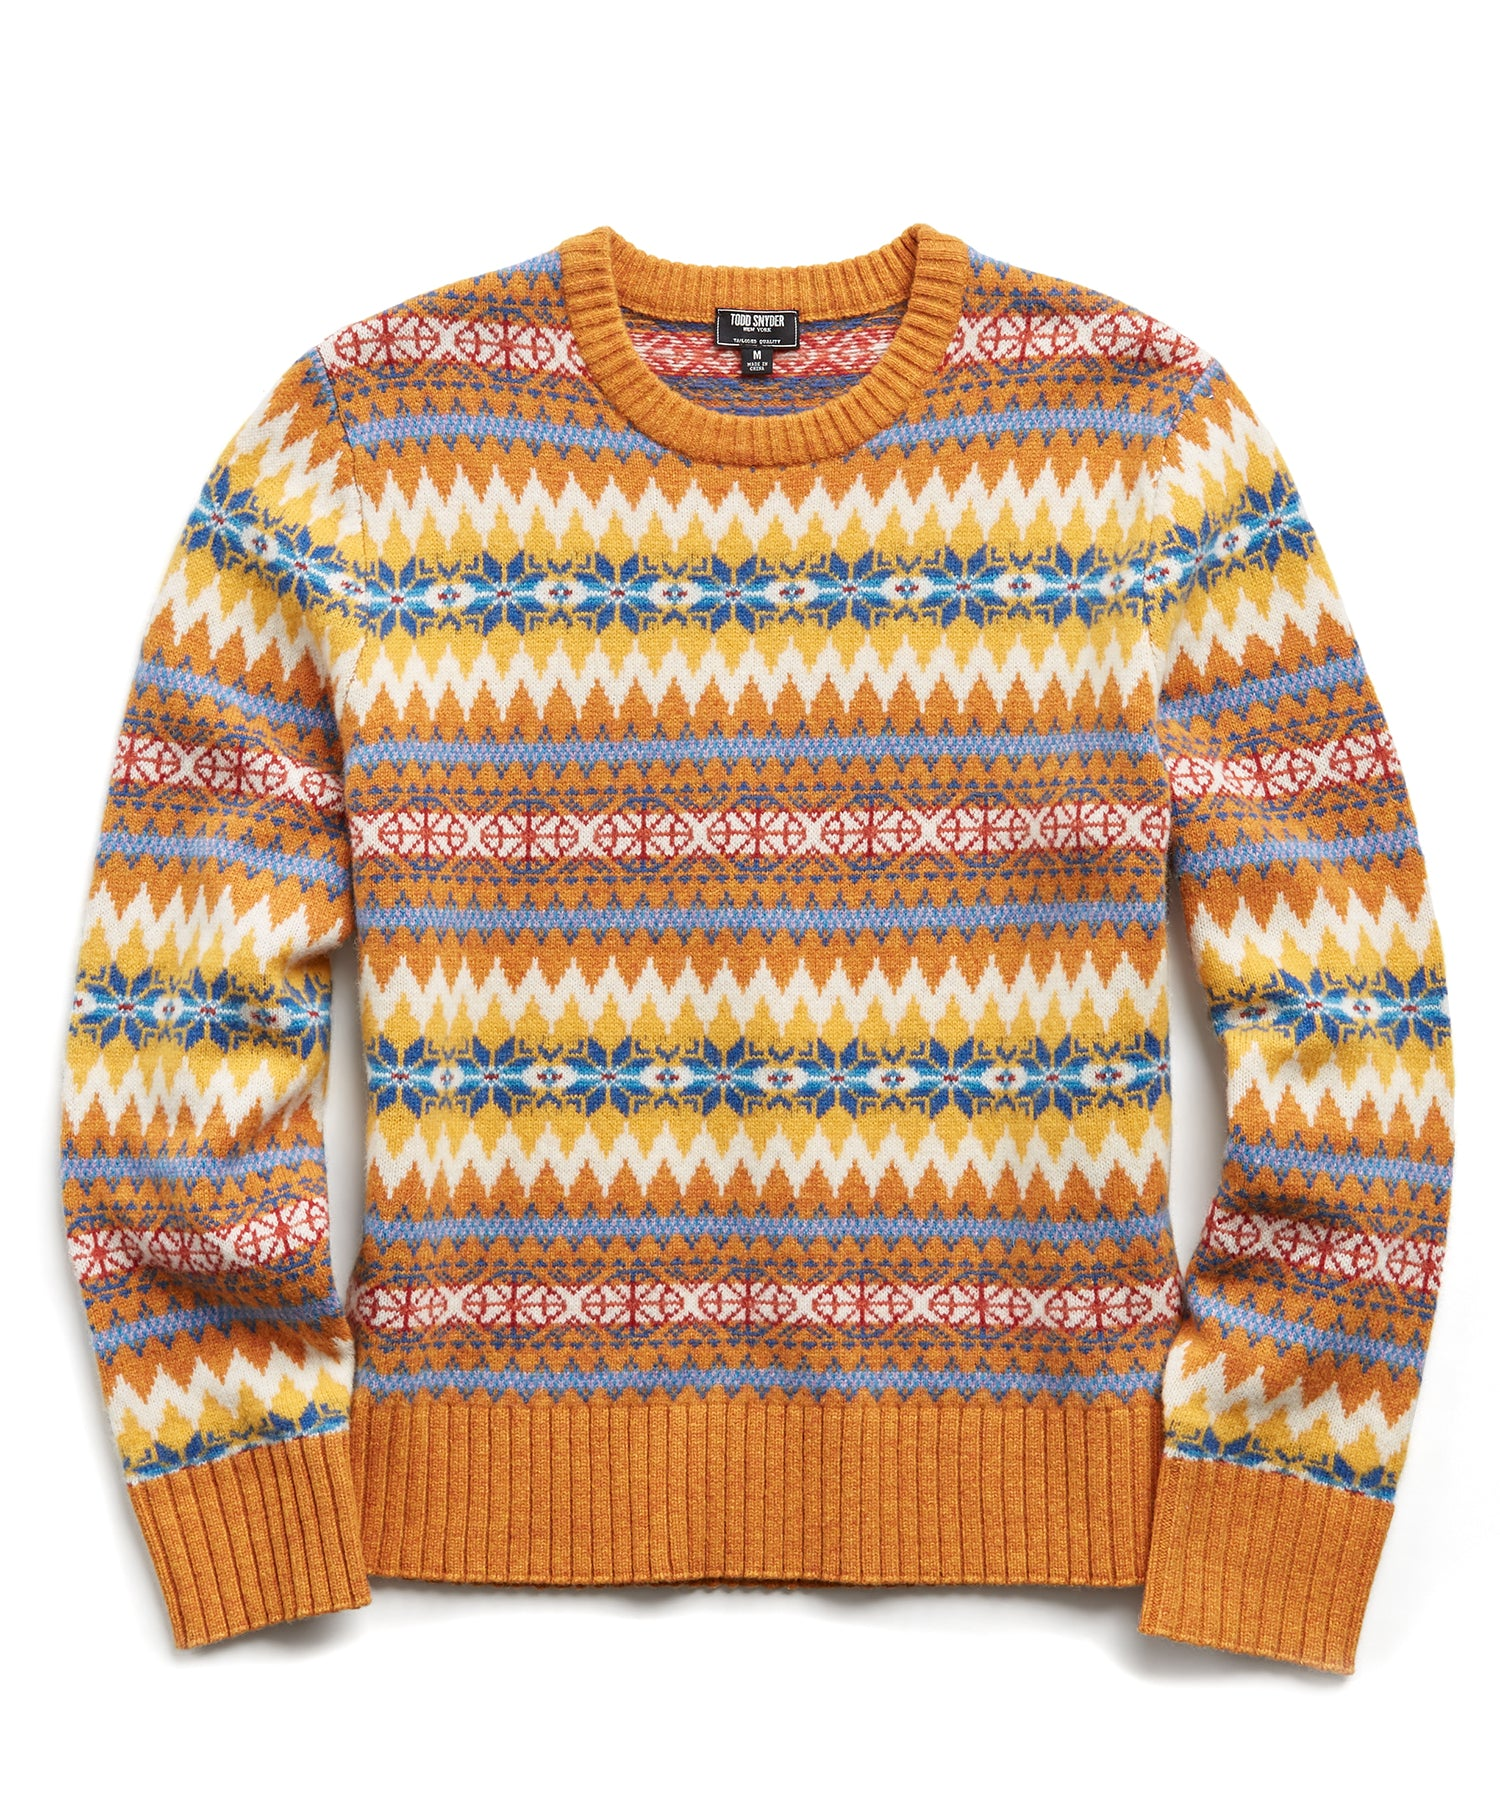 Wool Fairisle Crewneck Sweater in Gold